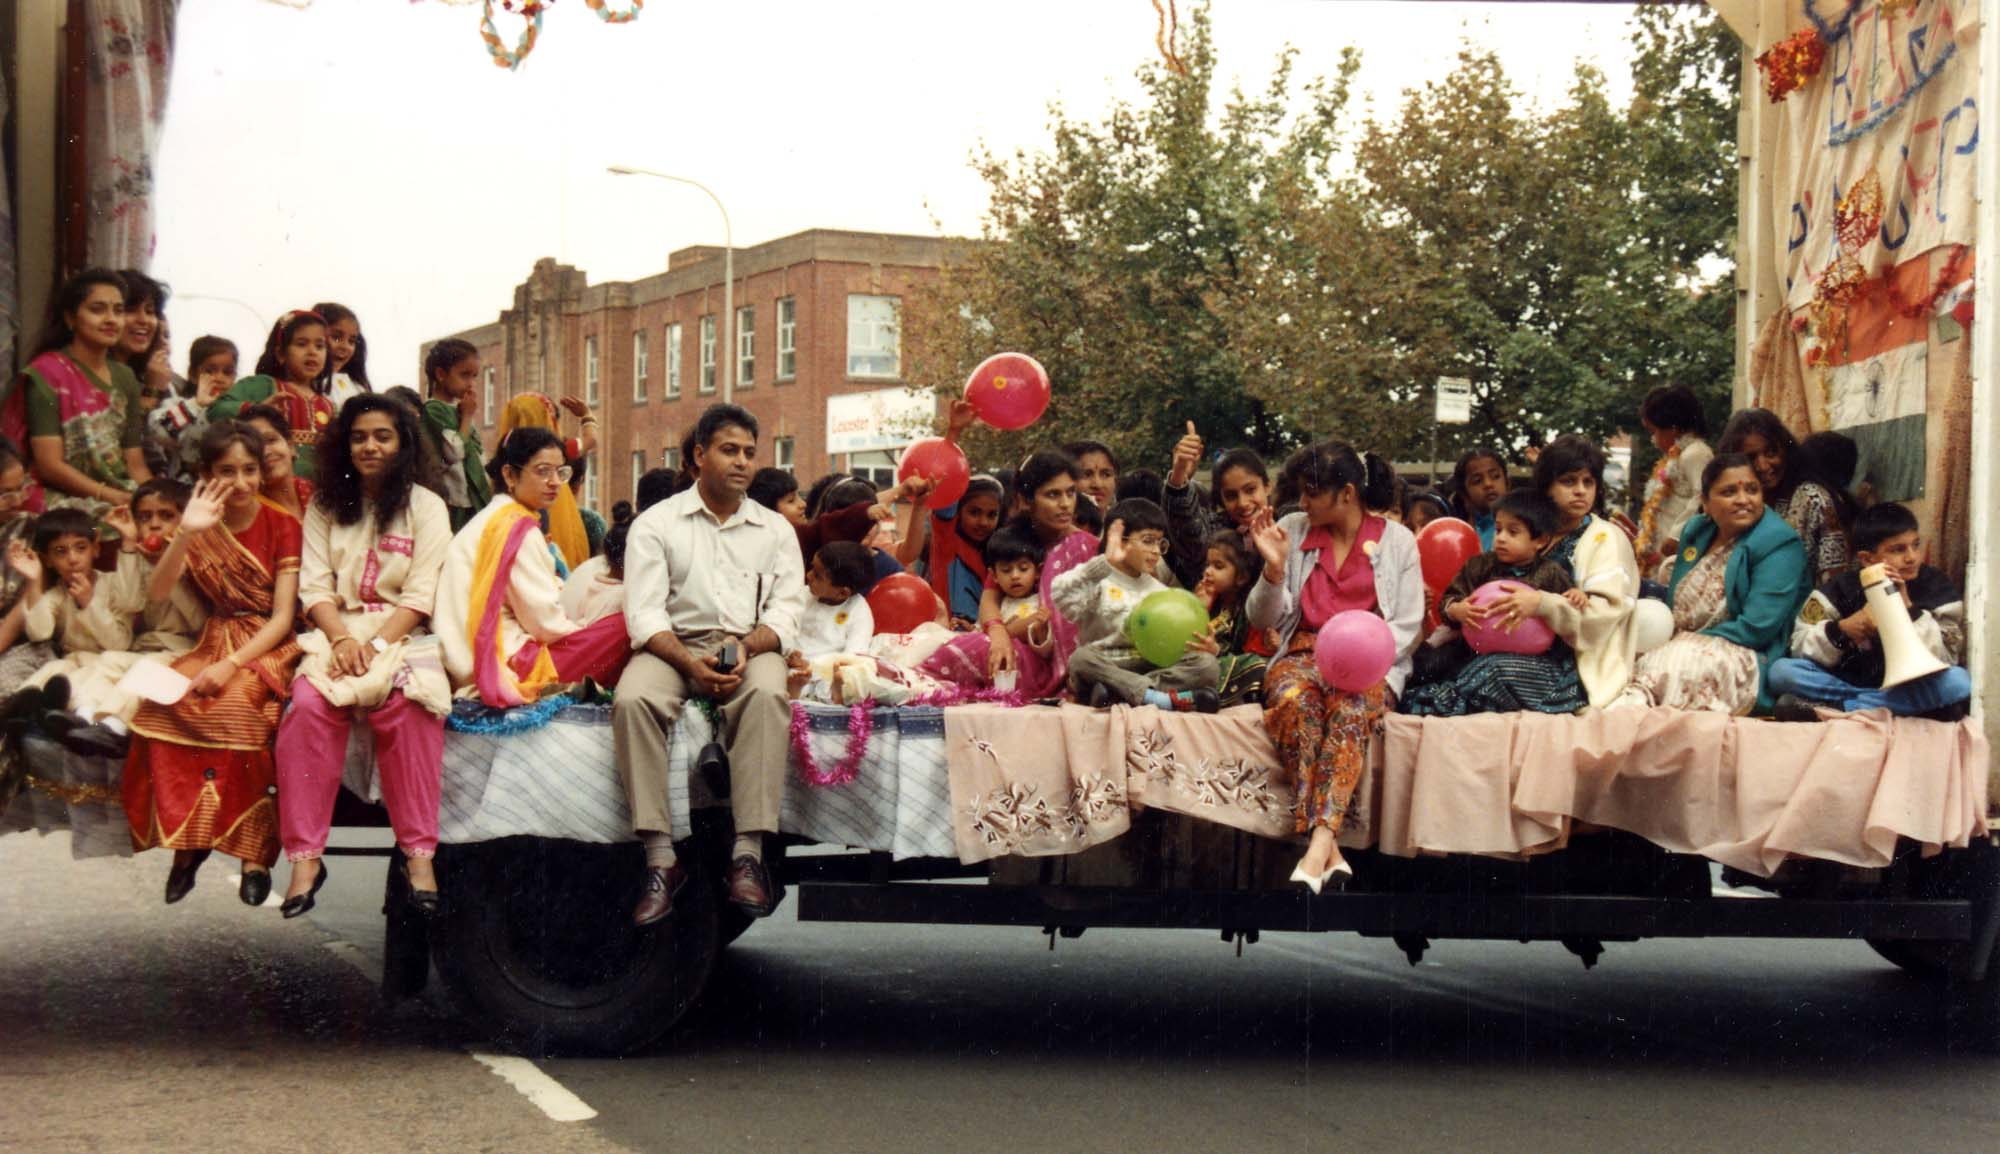 The Belgrave Neighbourhood Playgroup on a float in the Leicester Mela parade, early 1990s. -